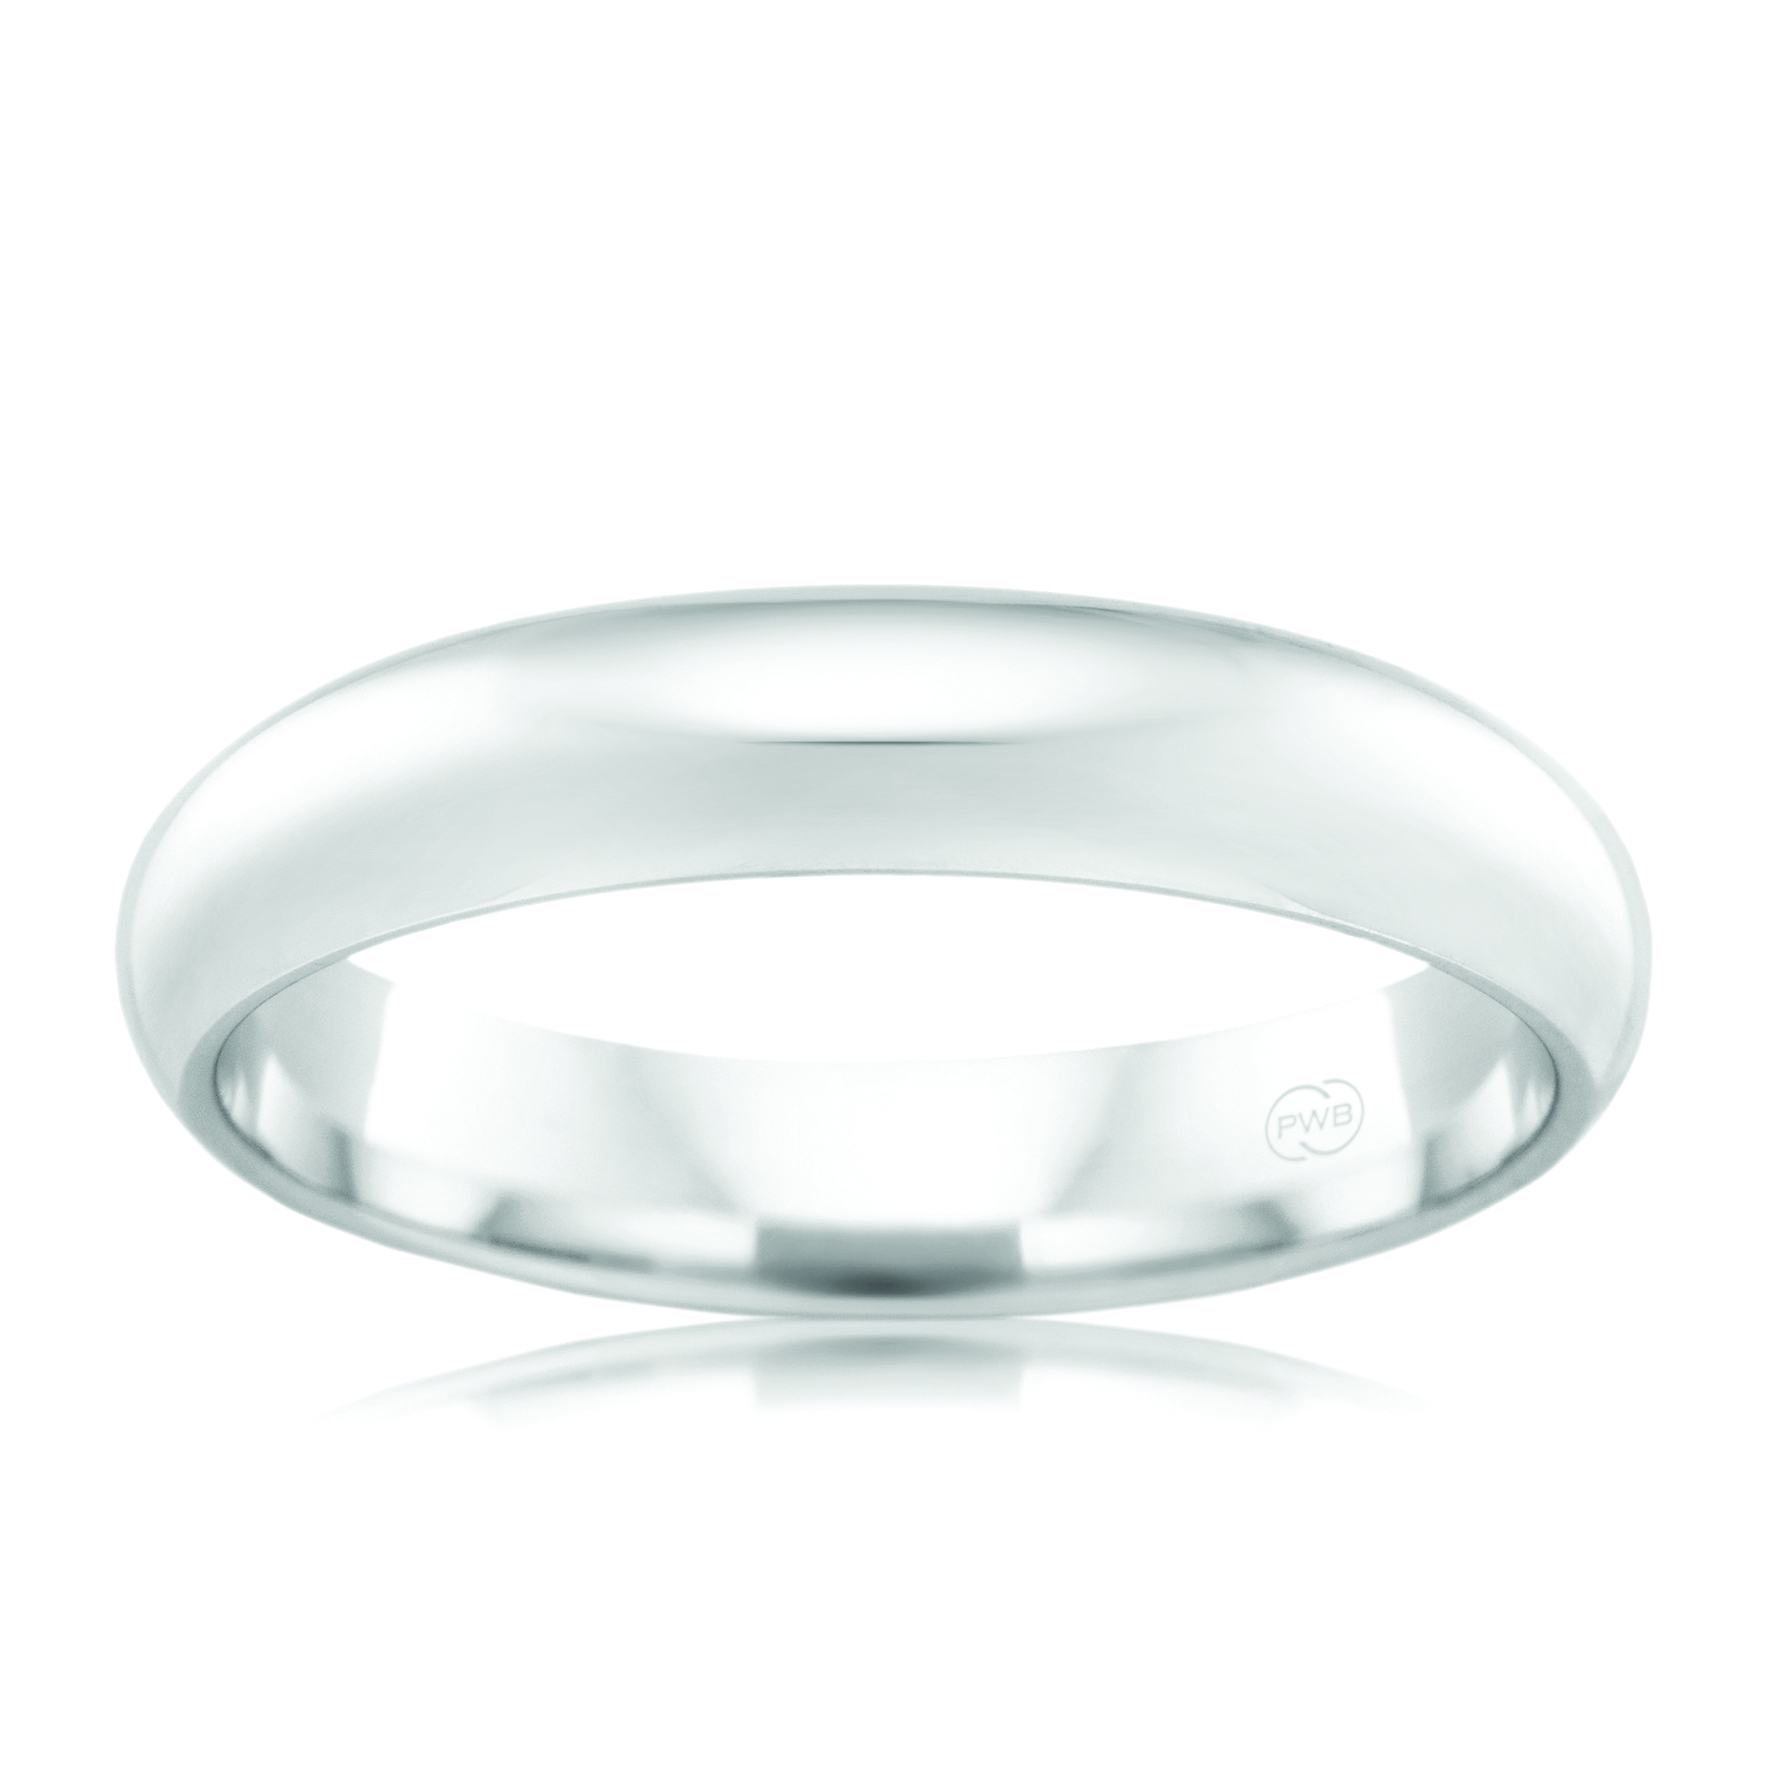 Peter W Beck Ring HD4 W